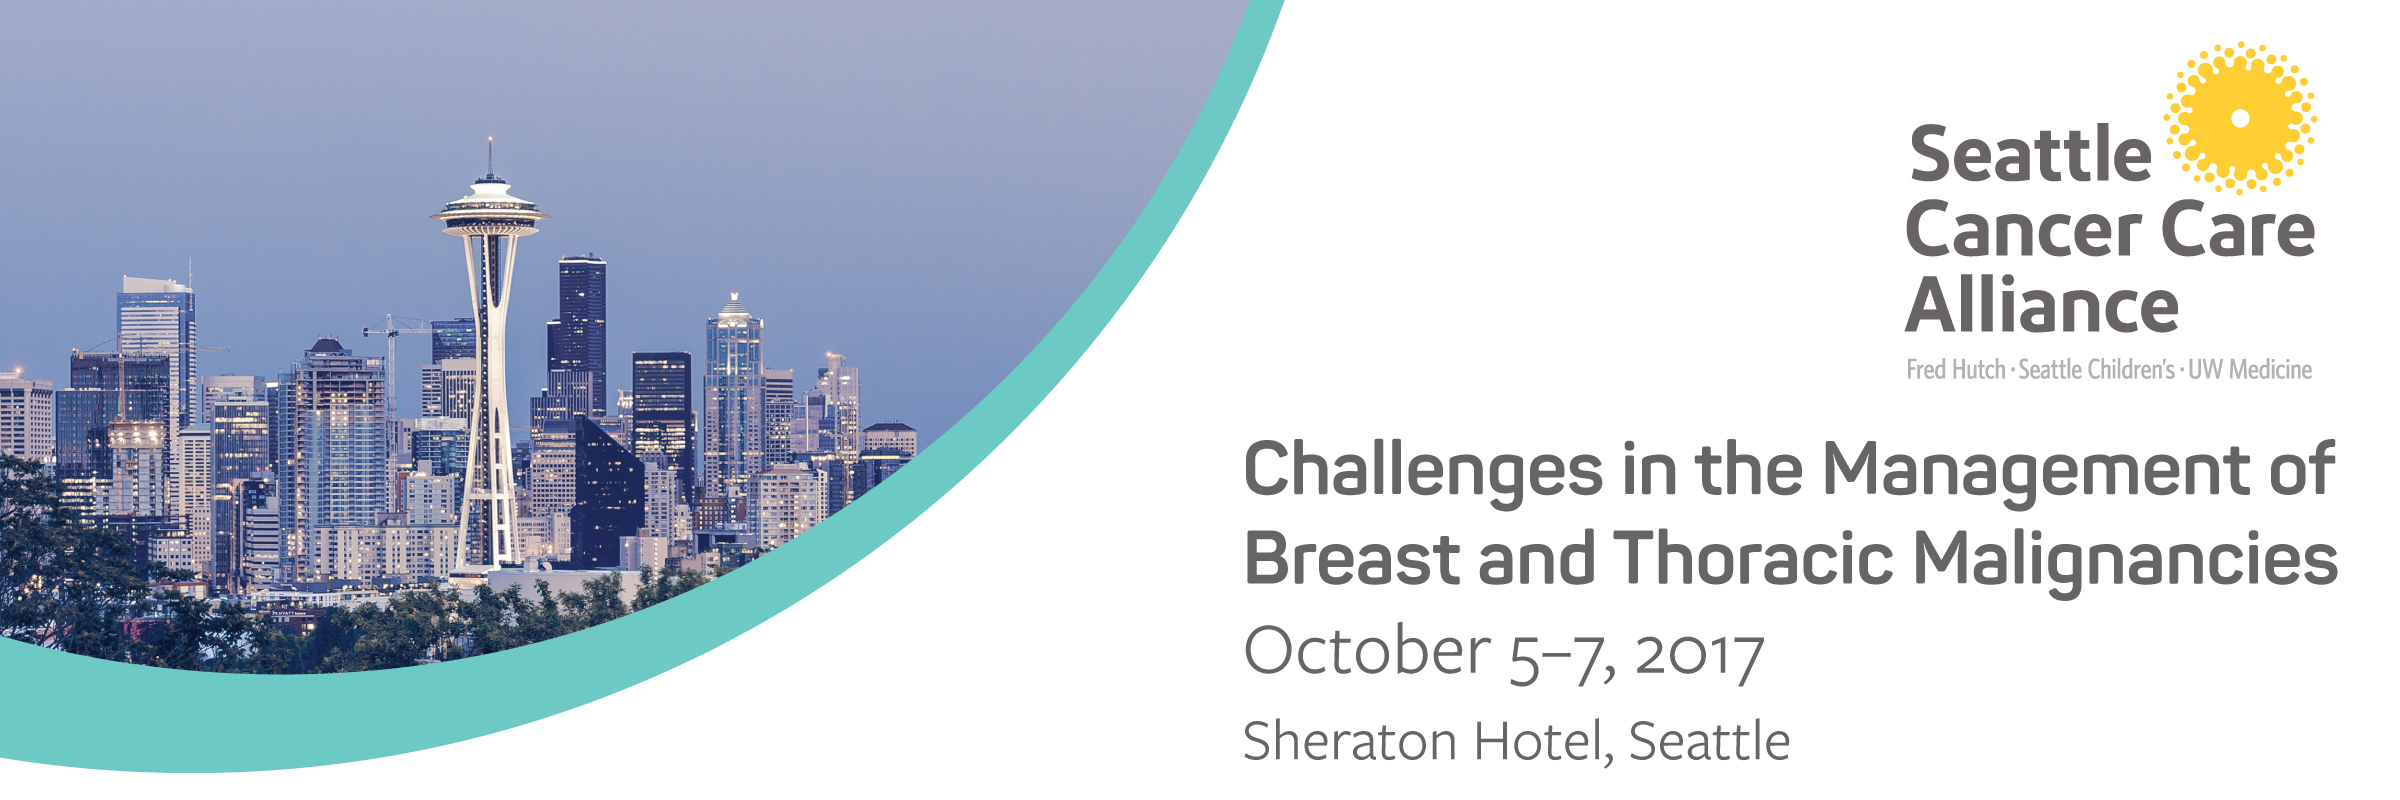 Challenges in the Management of Breast and Thoracic Malignancies